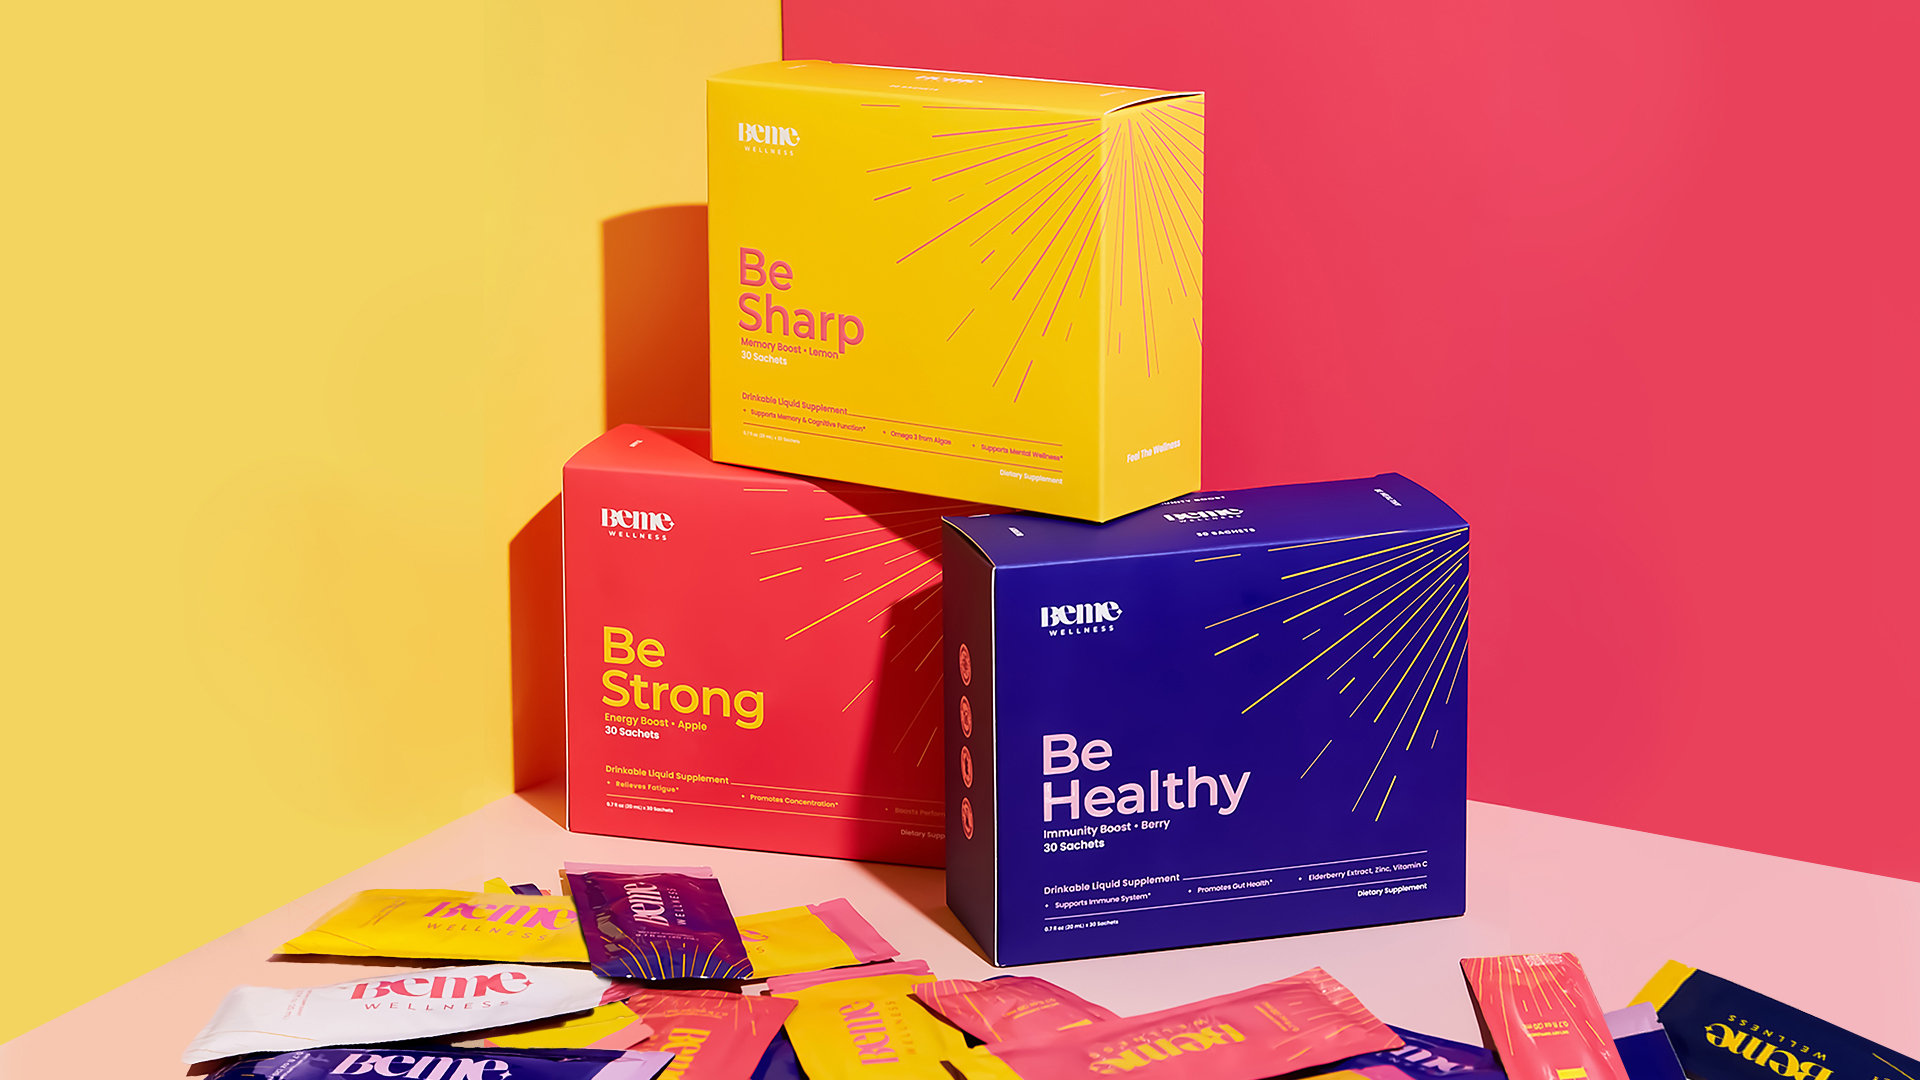 BeMe Breaks into the Health Supplements Industry